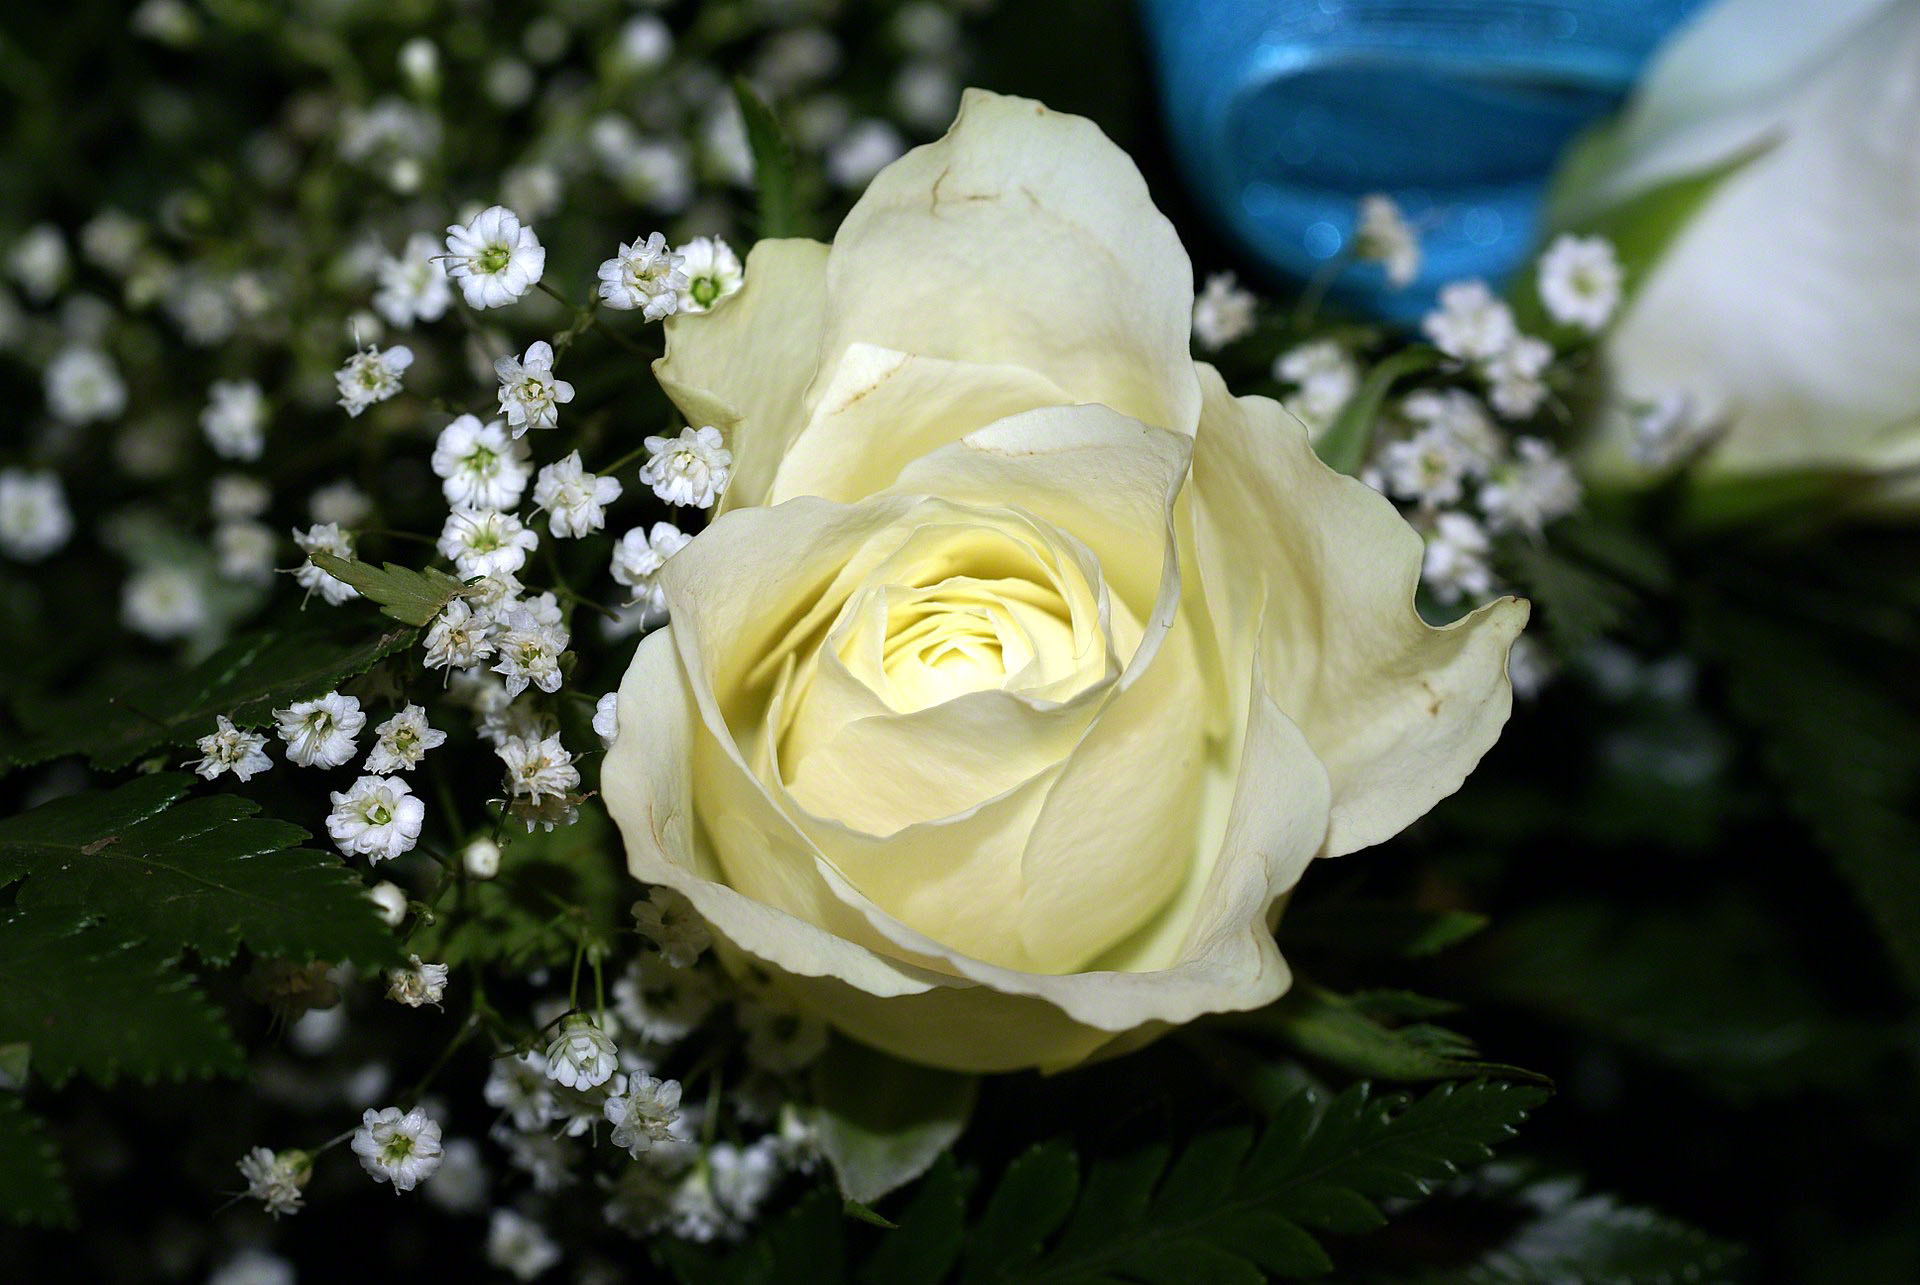 http://www.fabiovisentin.com/photography/photo/12/white-rose-bouquet-0266914.jpg